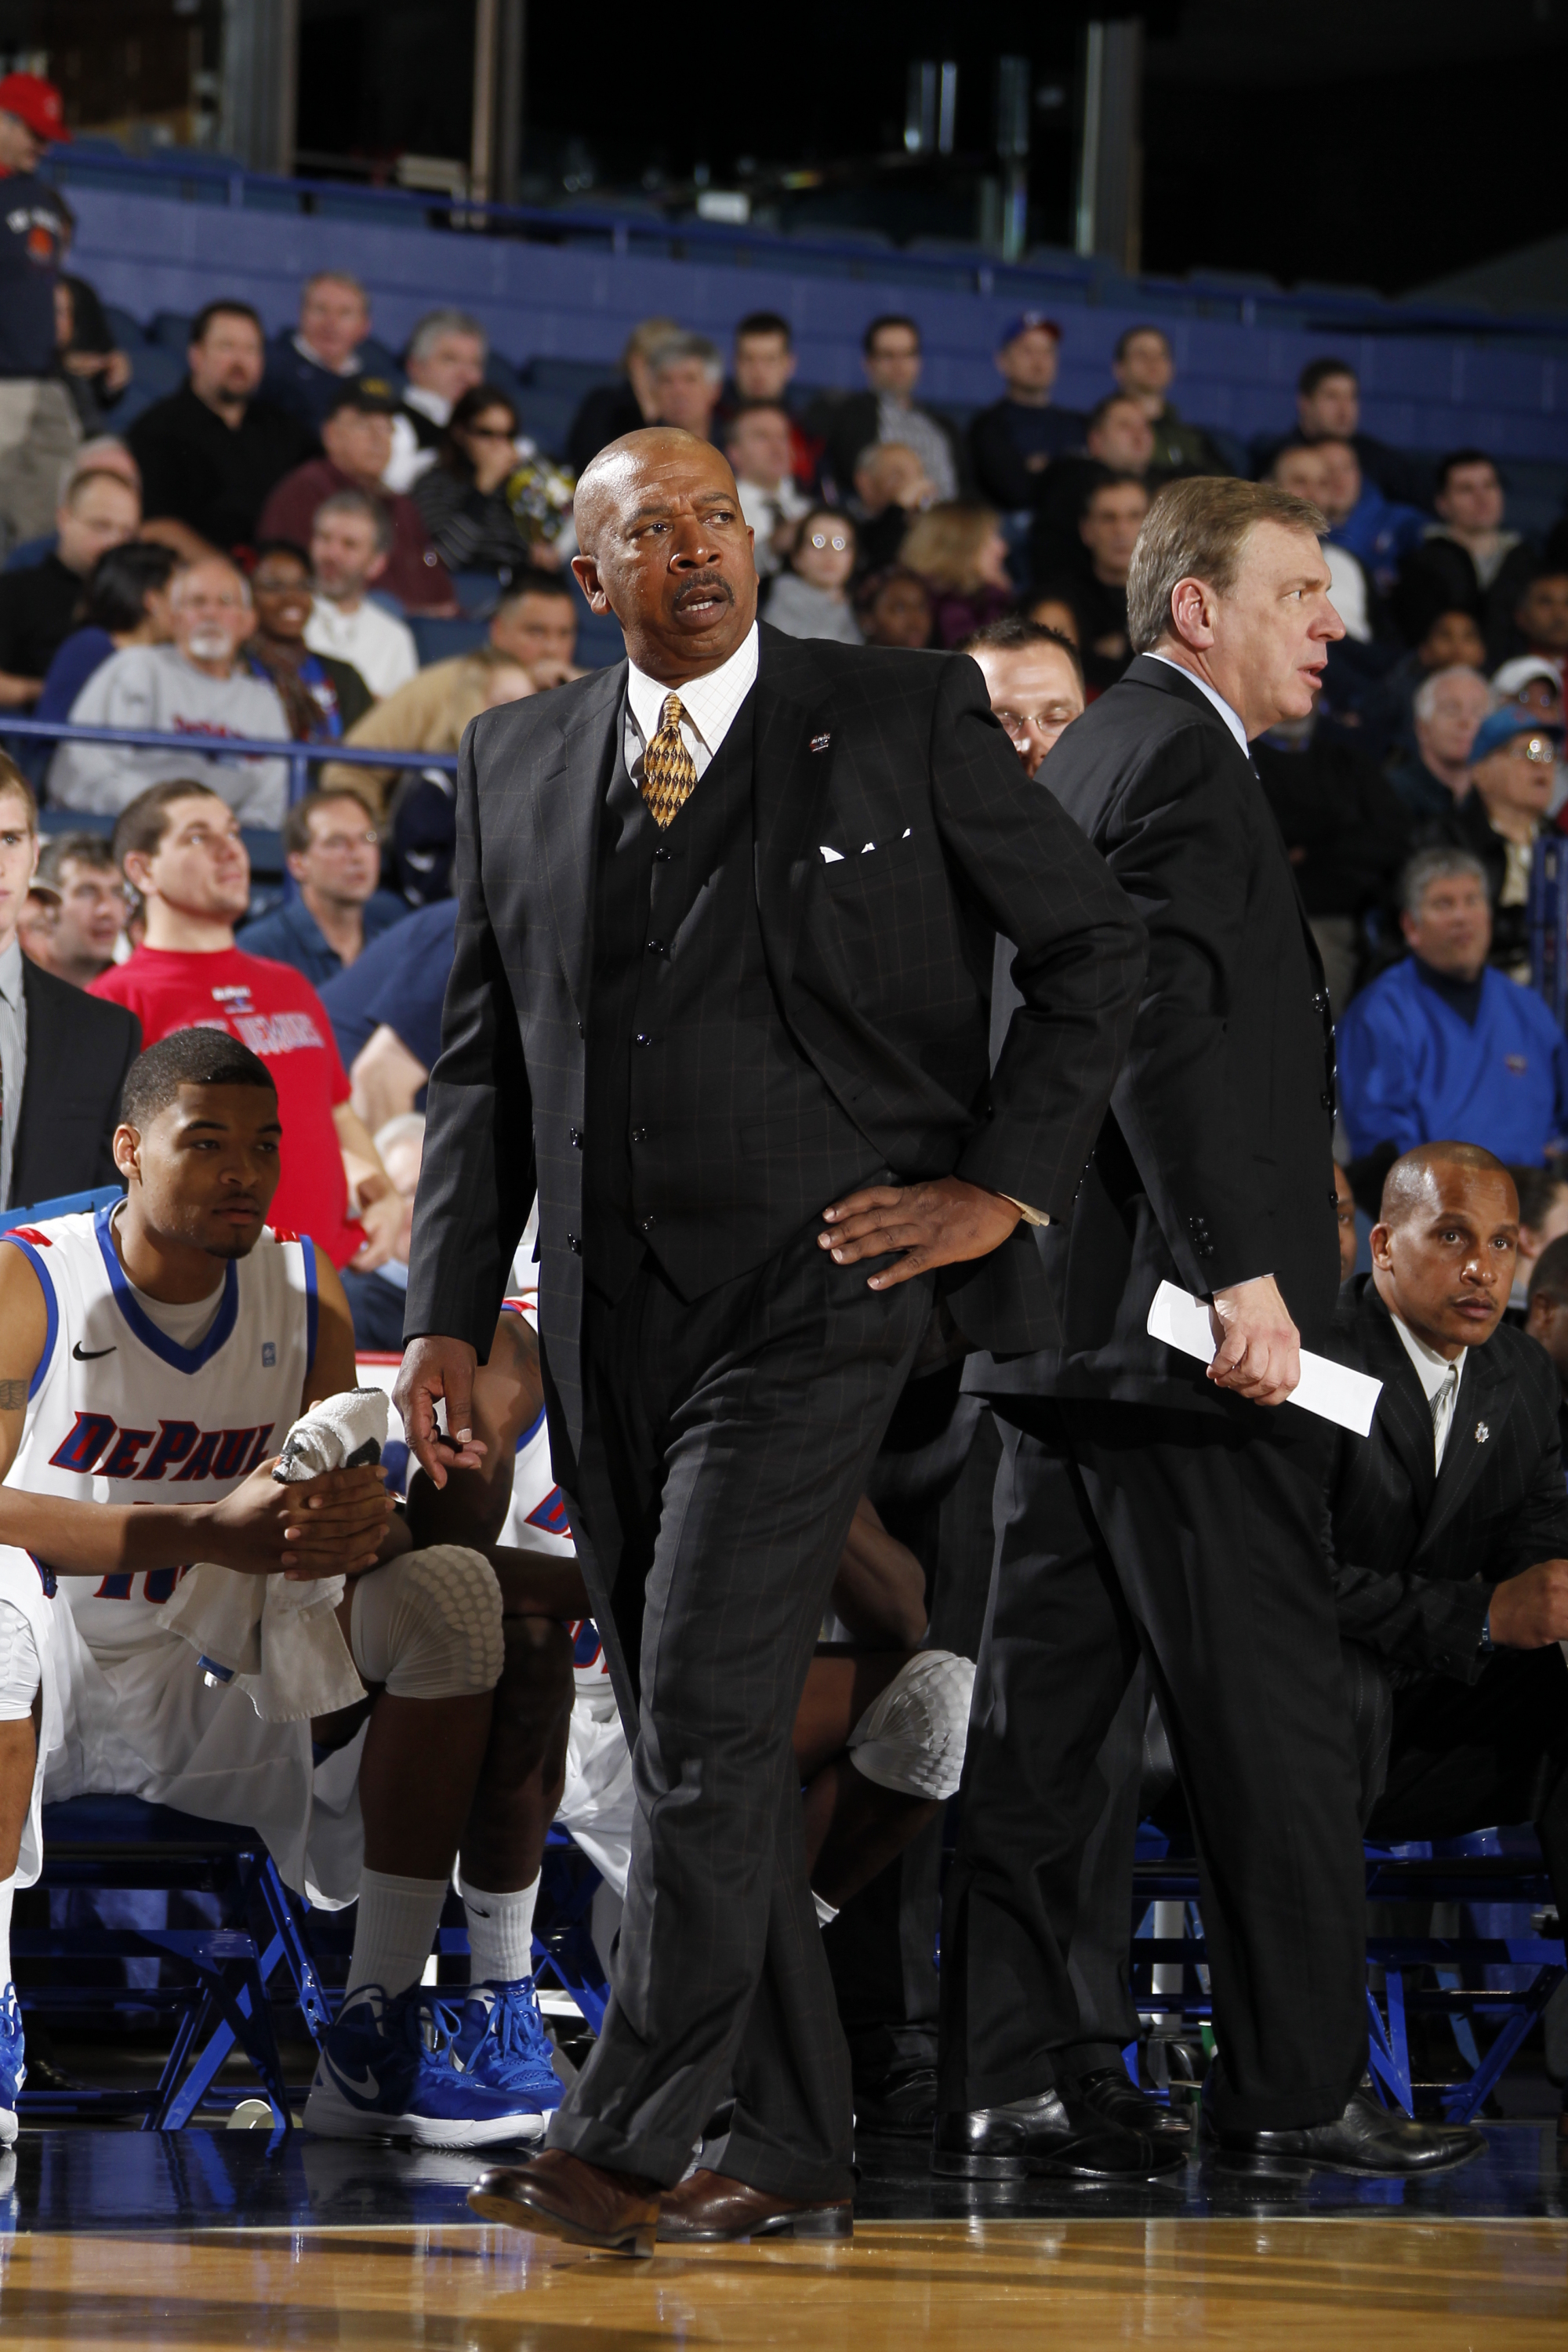 The Blue Demons Start Big East Play On Jan. 2 Against Seton Hall At Allstate